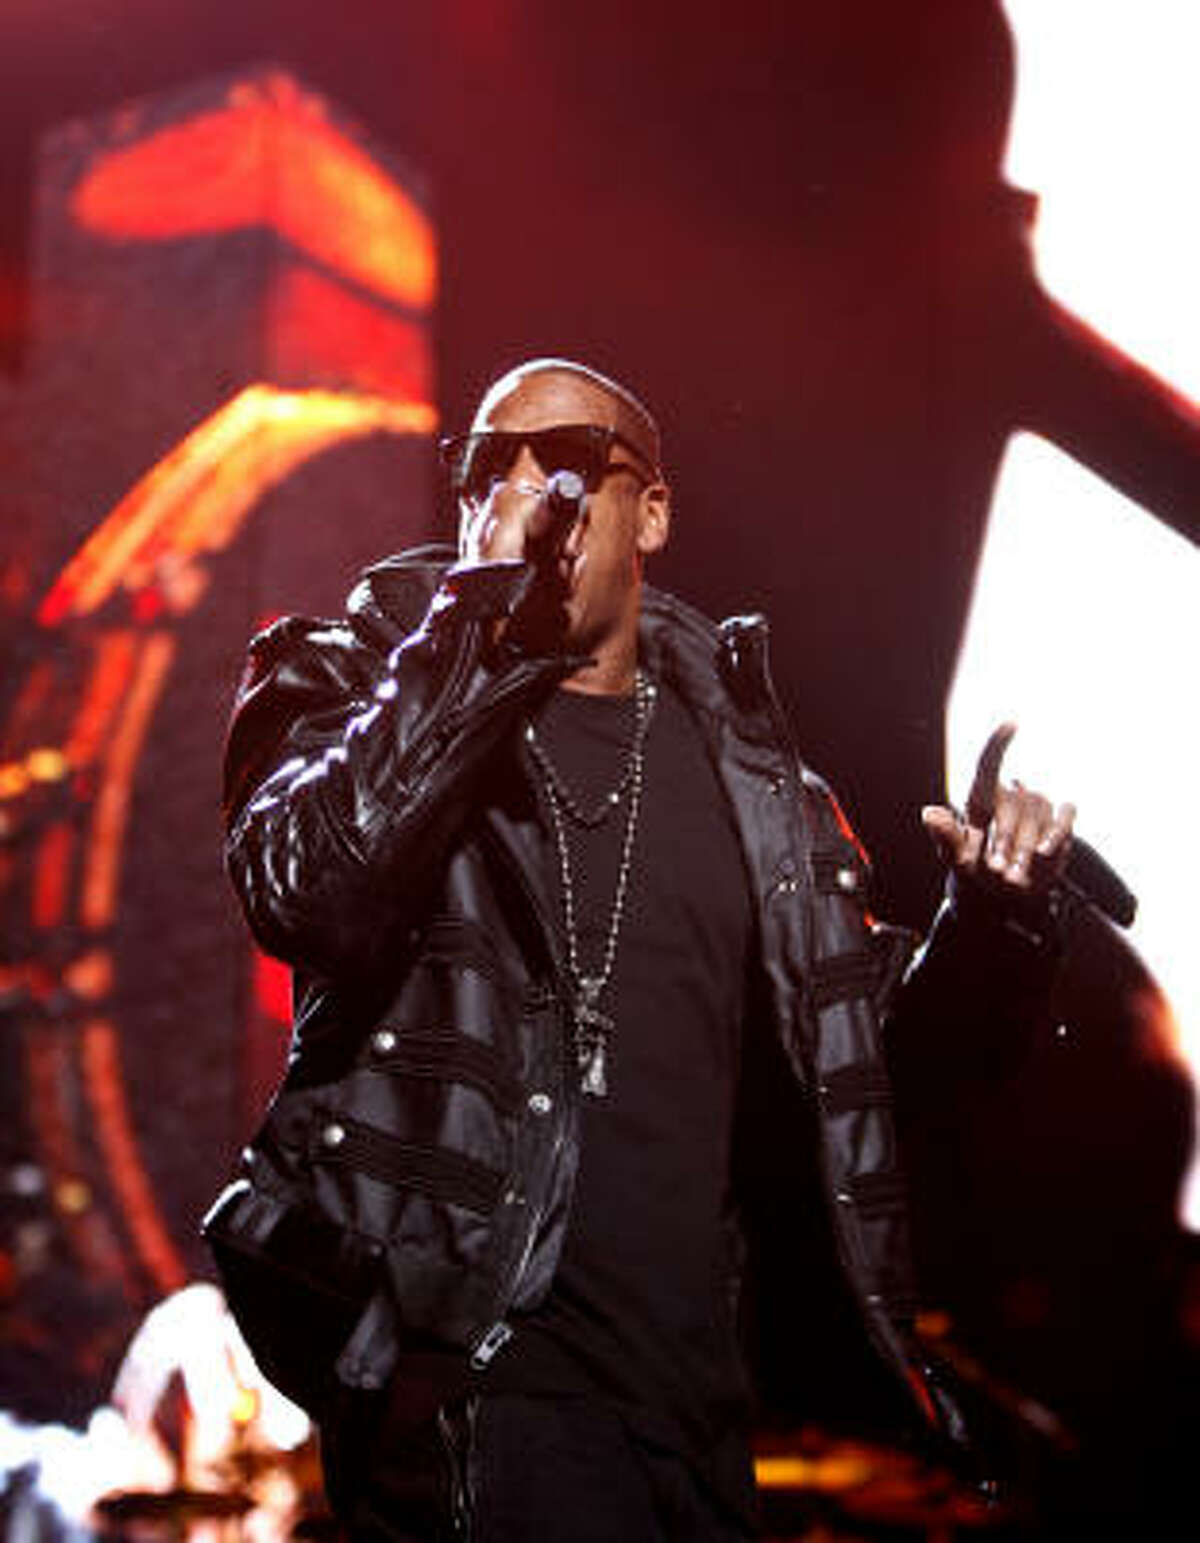 Jay-Z at the Toyota Center on Monday, Feb. 22, 2010.